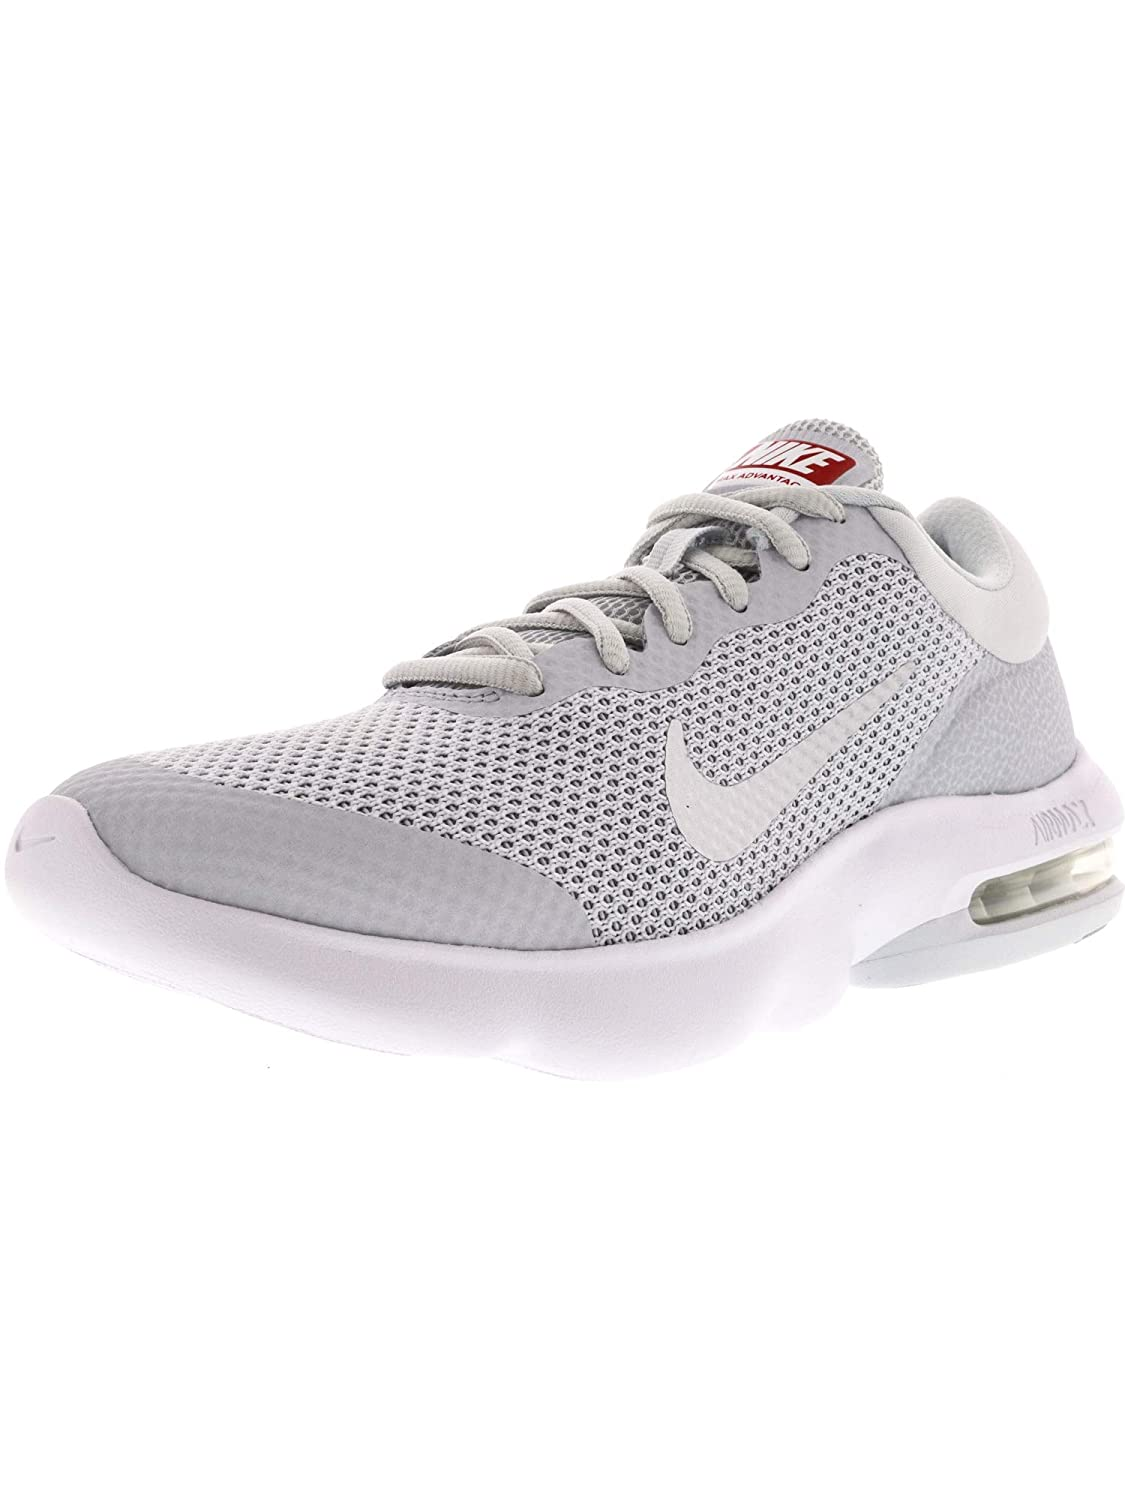 promo code 6e128 4e2c7 Nike Women s Air Max Advantage Running Shoe Pure Platinum White Wolf Grey  Size 7 M US  Buy Online at Low Prices in India - Amazon.in